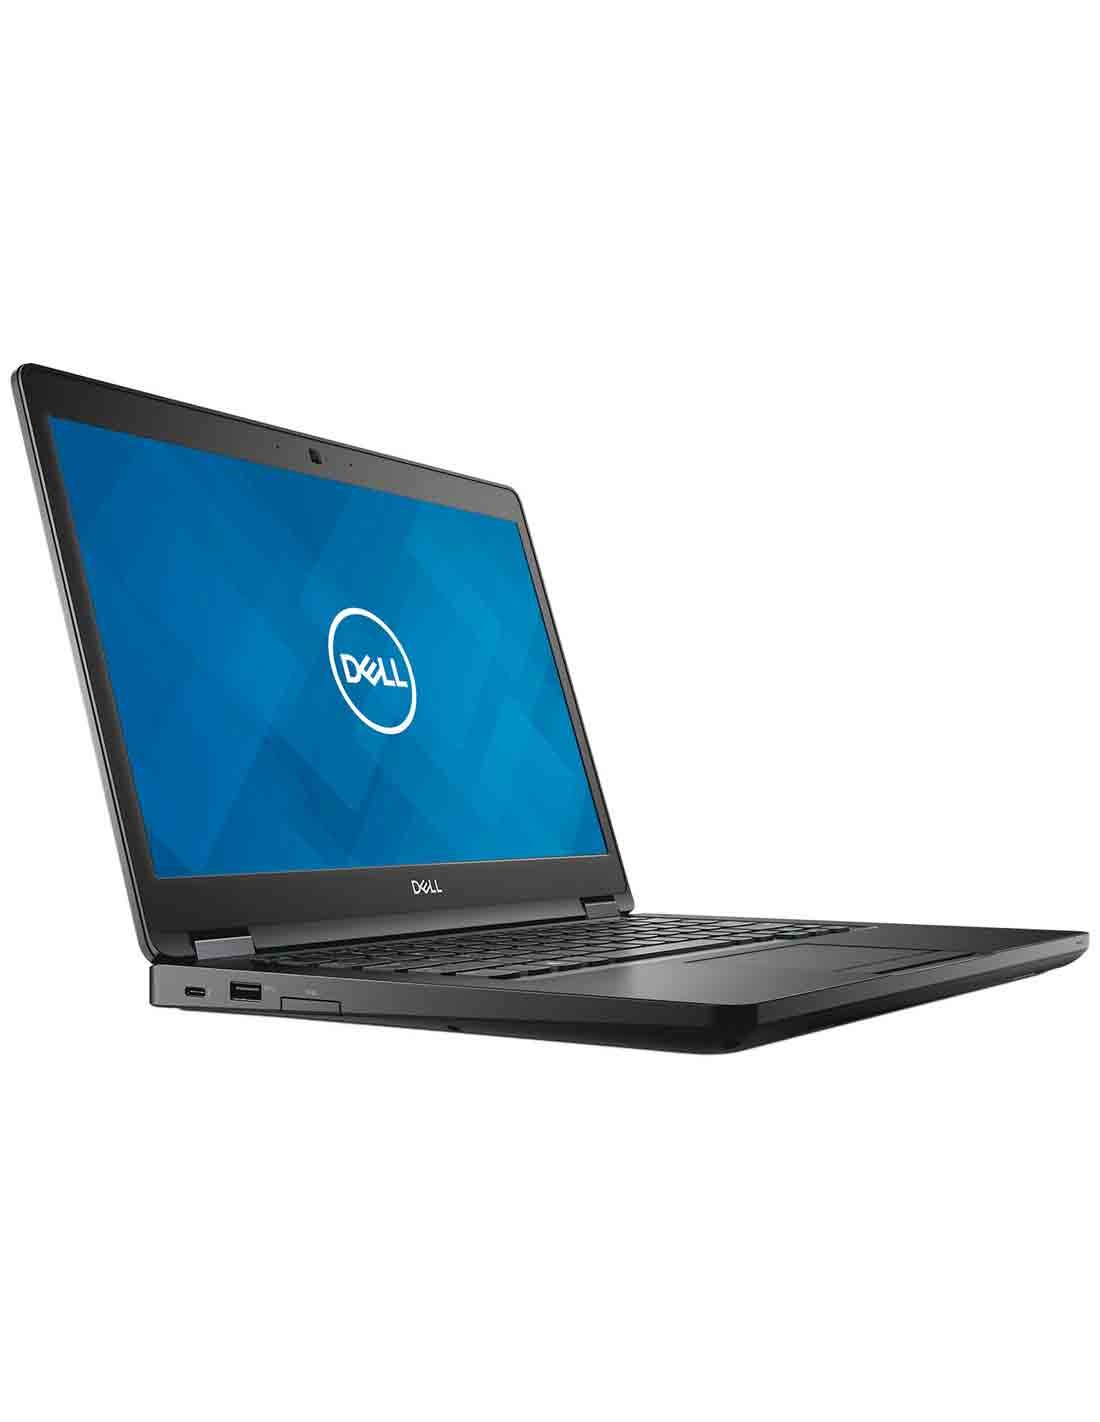 Dell Latitude 5490 Laptop 8GB at the cheapest price in Dubai computer store